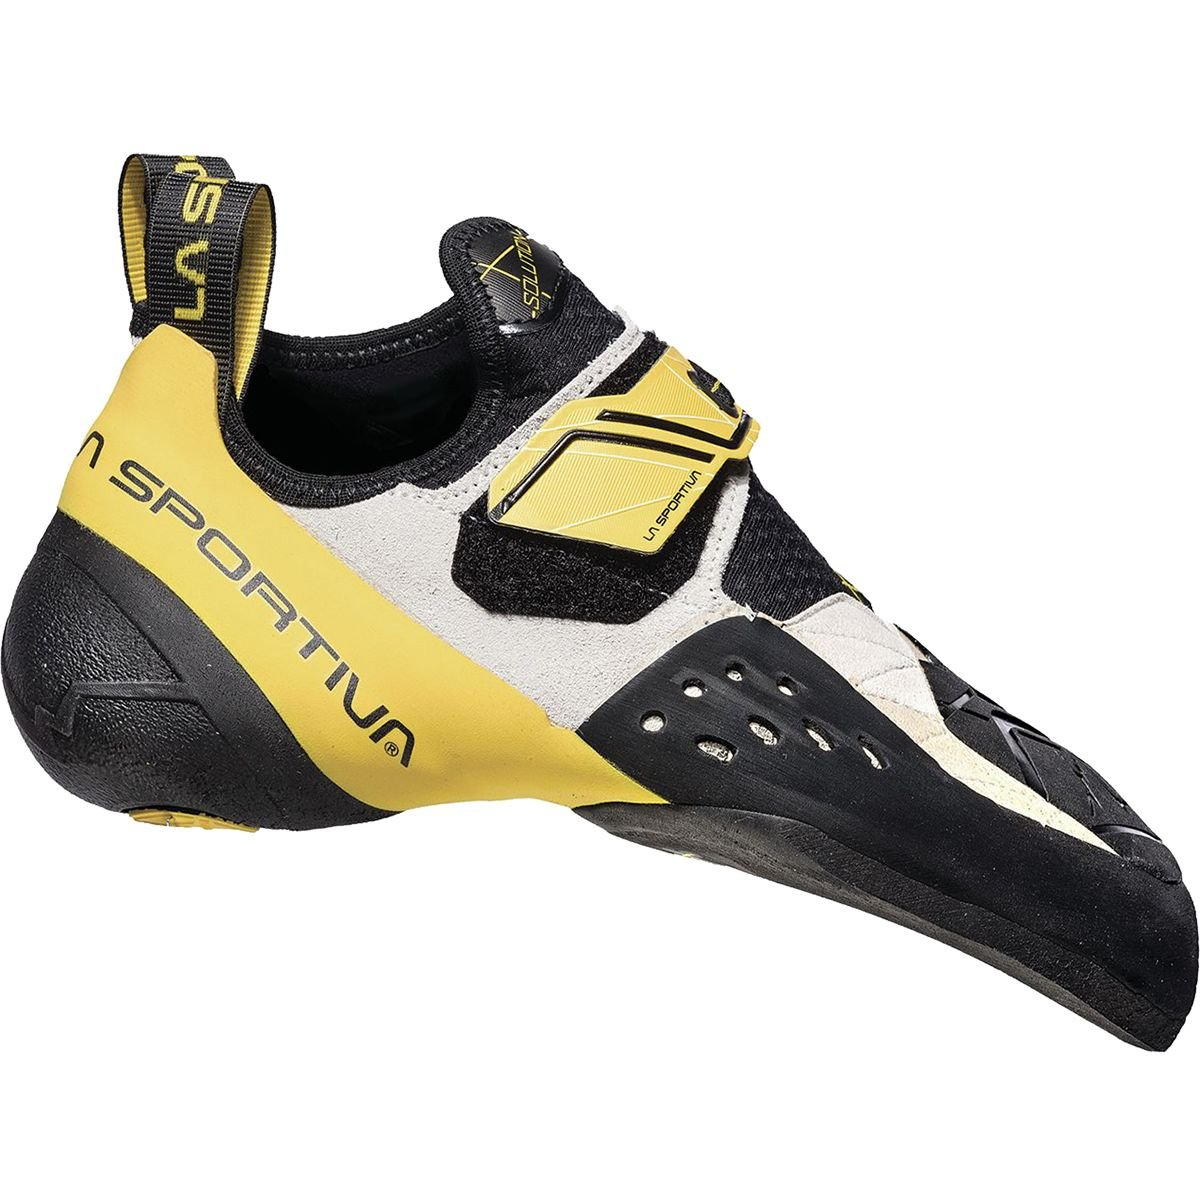 La Sportiva Solution Climbing Shoe - Men's 20G-000100-45.5